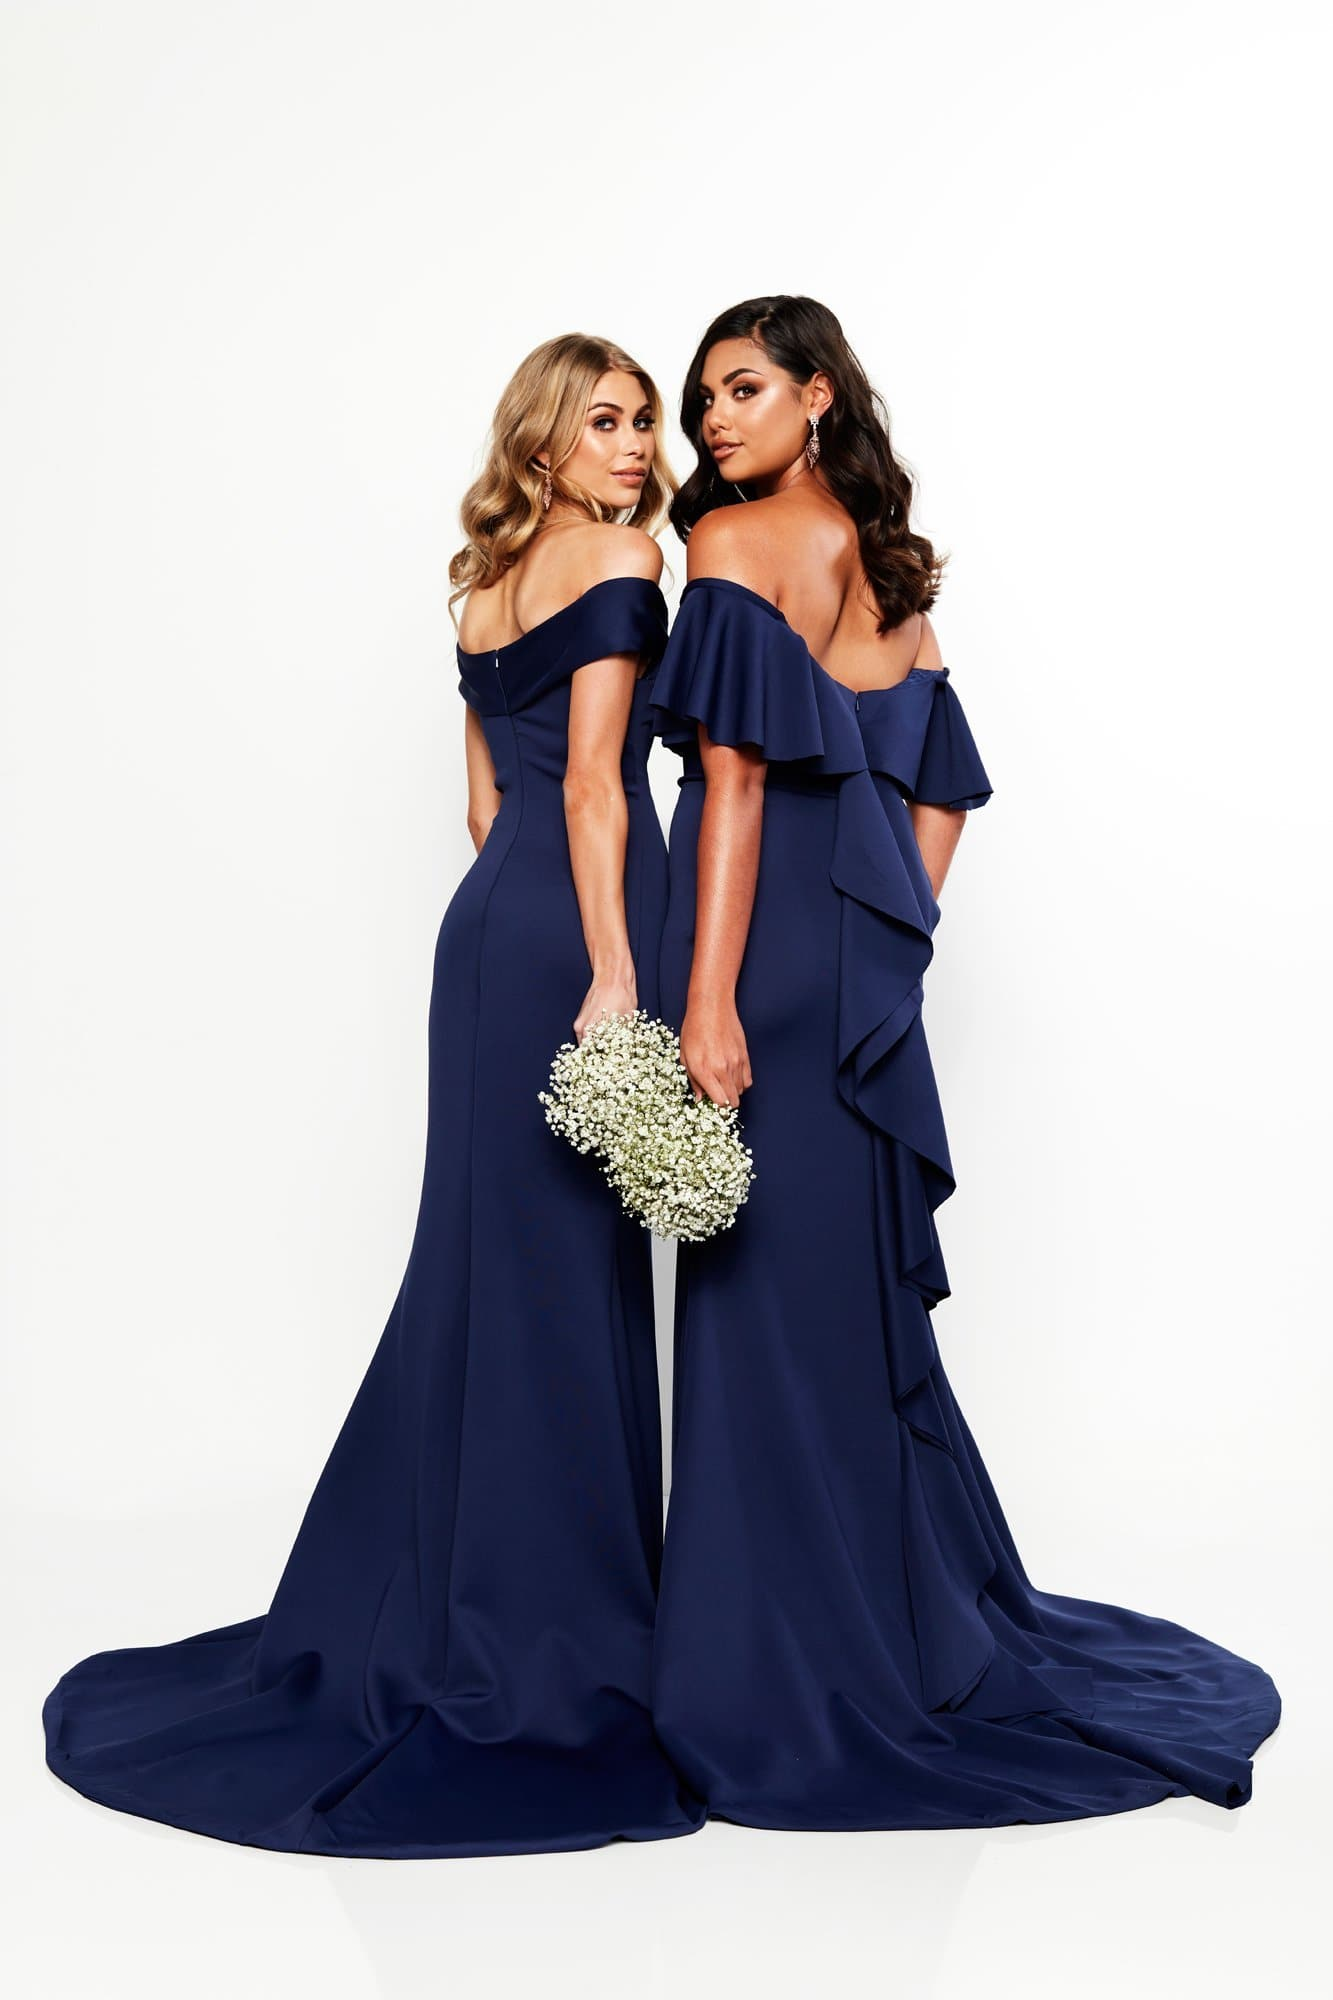 A&N Bridesmaids - Navy Evie Off-Shoulder Gown with Frill Detail